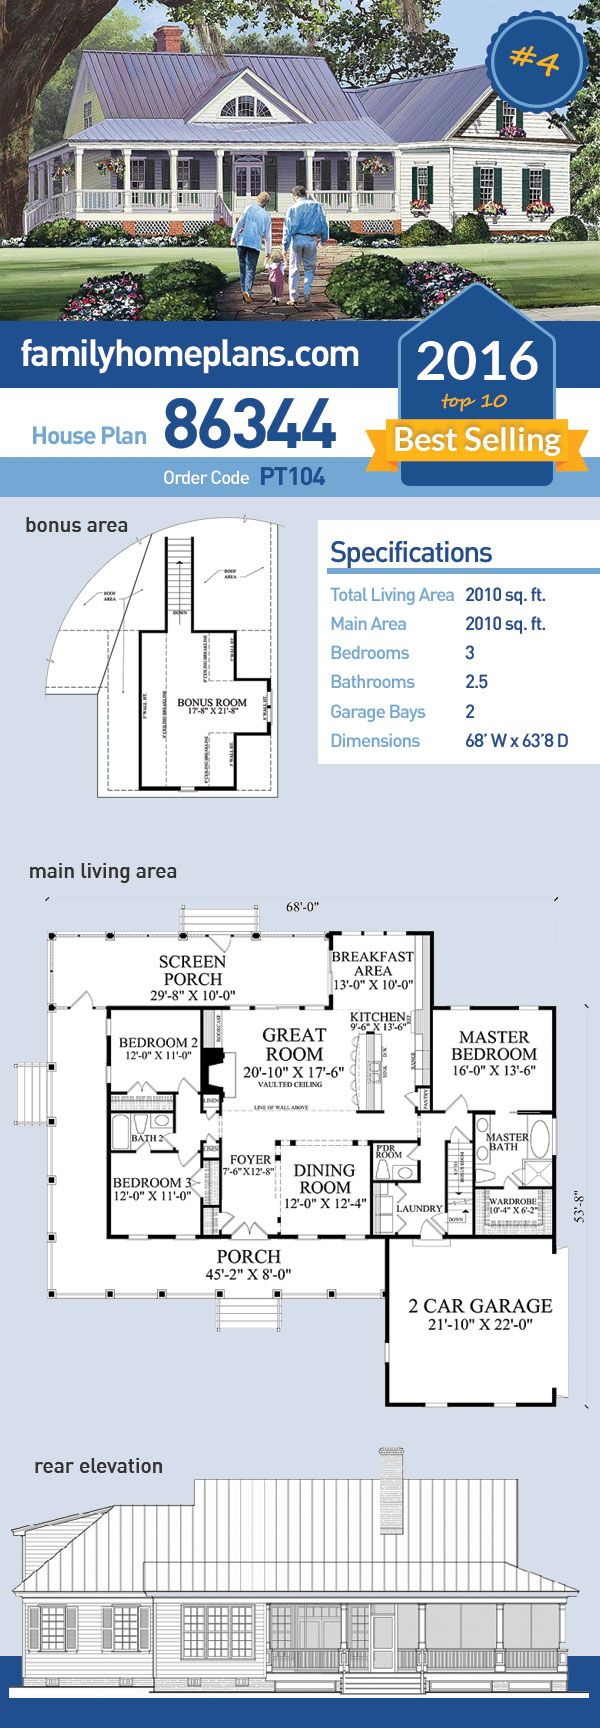 best 25 retirement house plans ideas on pinterest small home 4 of 2016 s top ten best selling house plans country house plan 86344 has